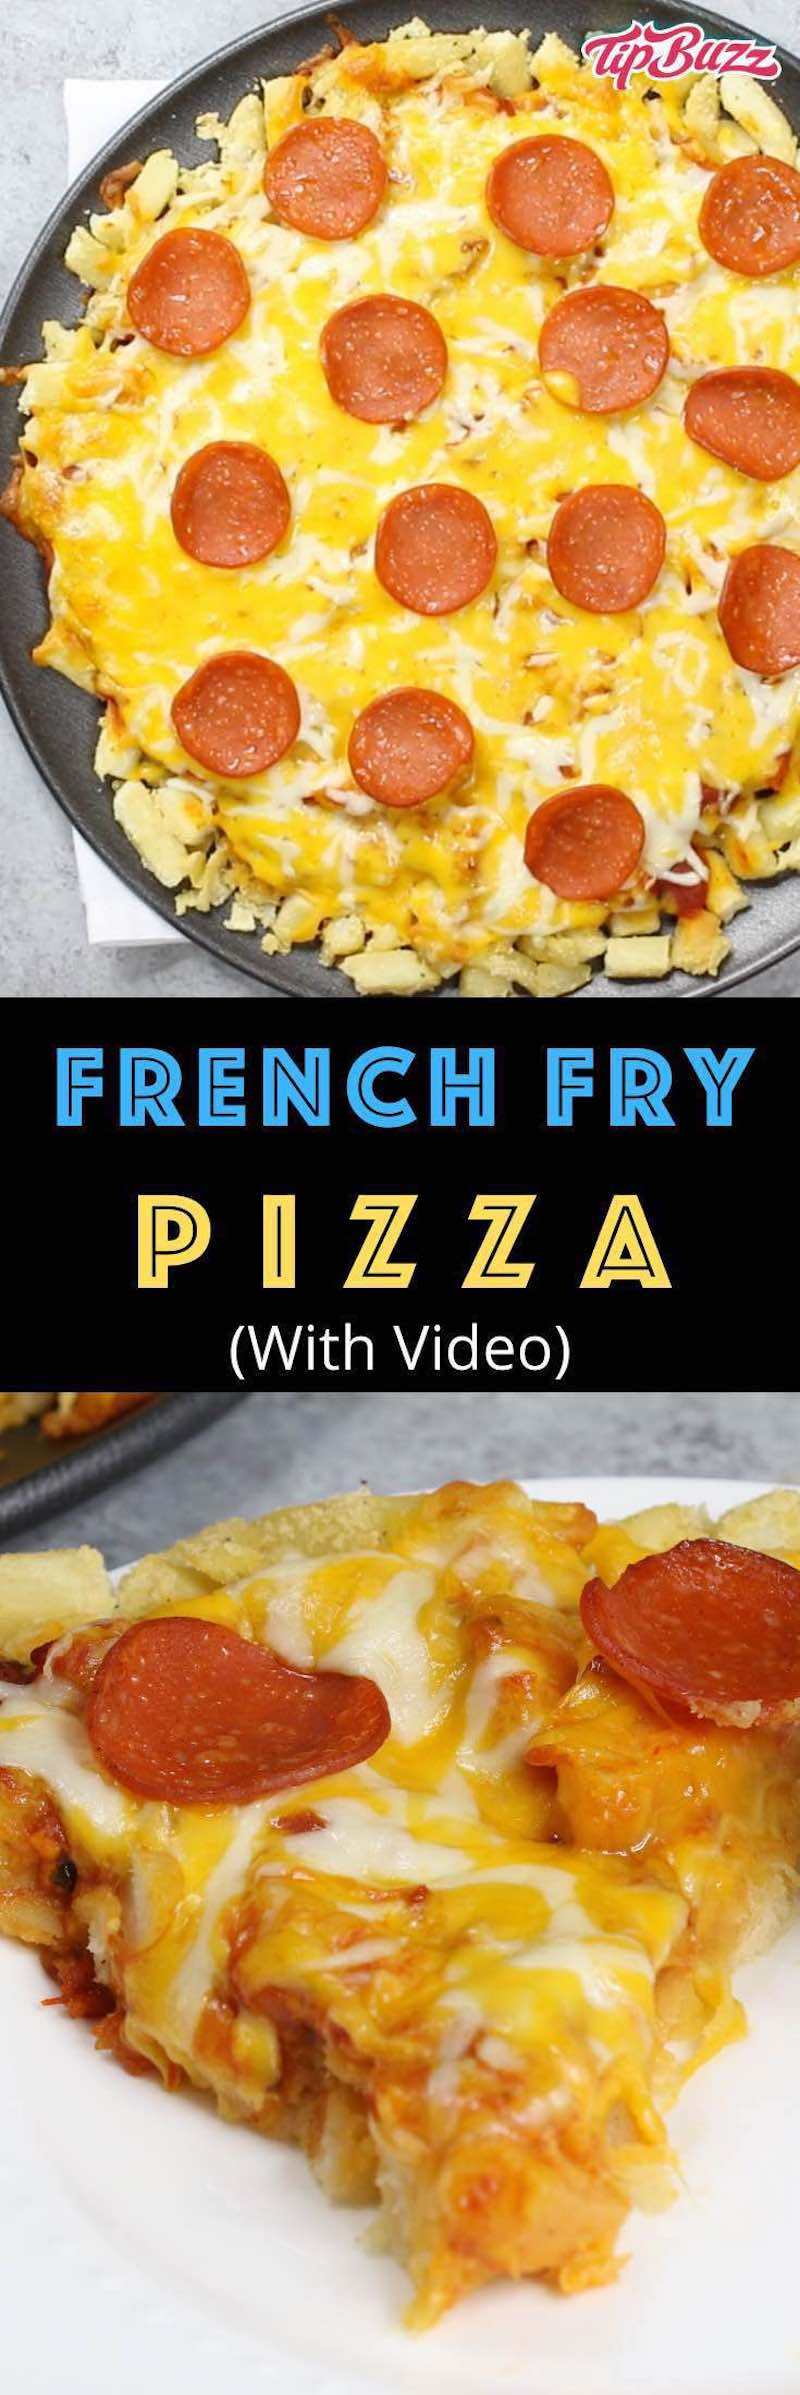 This French Fry Pizza is an epic recipe using frozen french fries to make a soft pizza crust. You only need 5 simple ingredients to make this for lunch, dinner or party. It's two favorites in one!